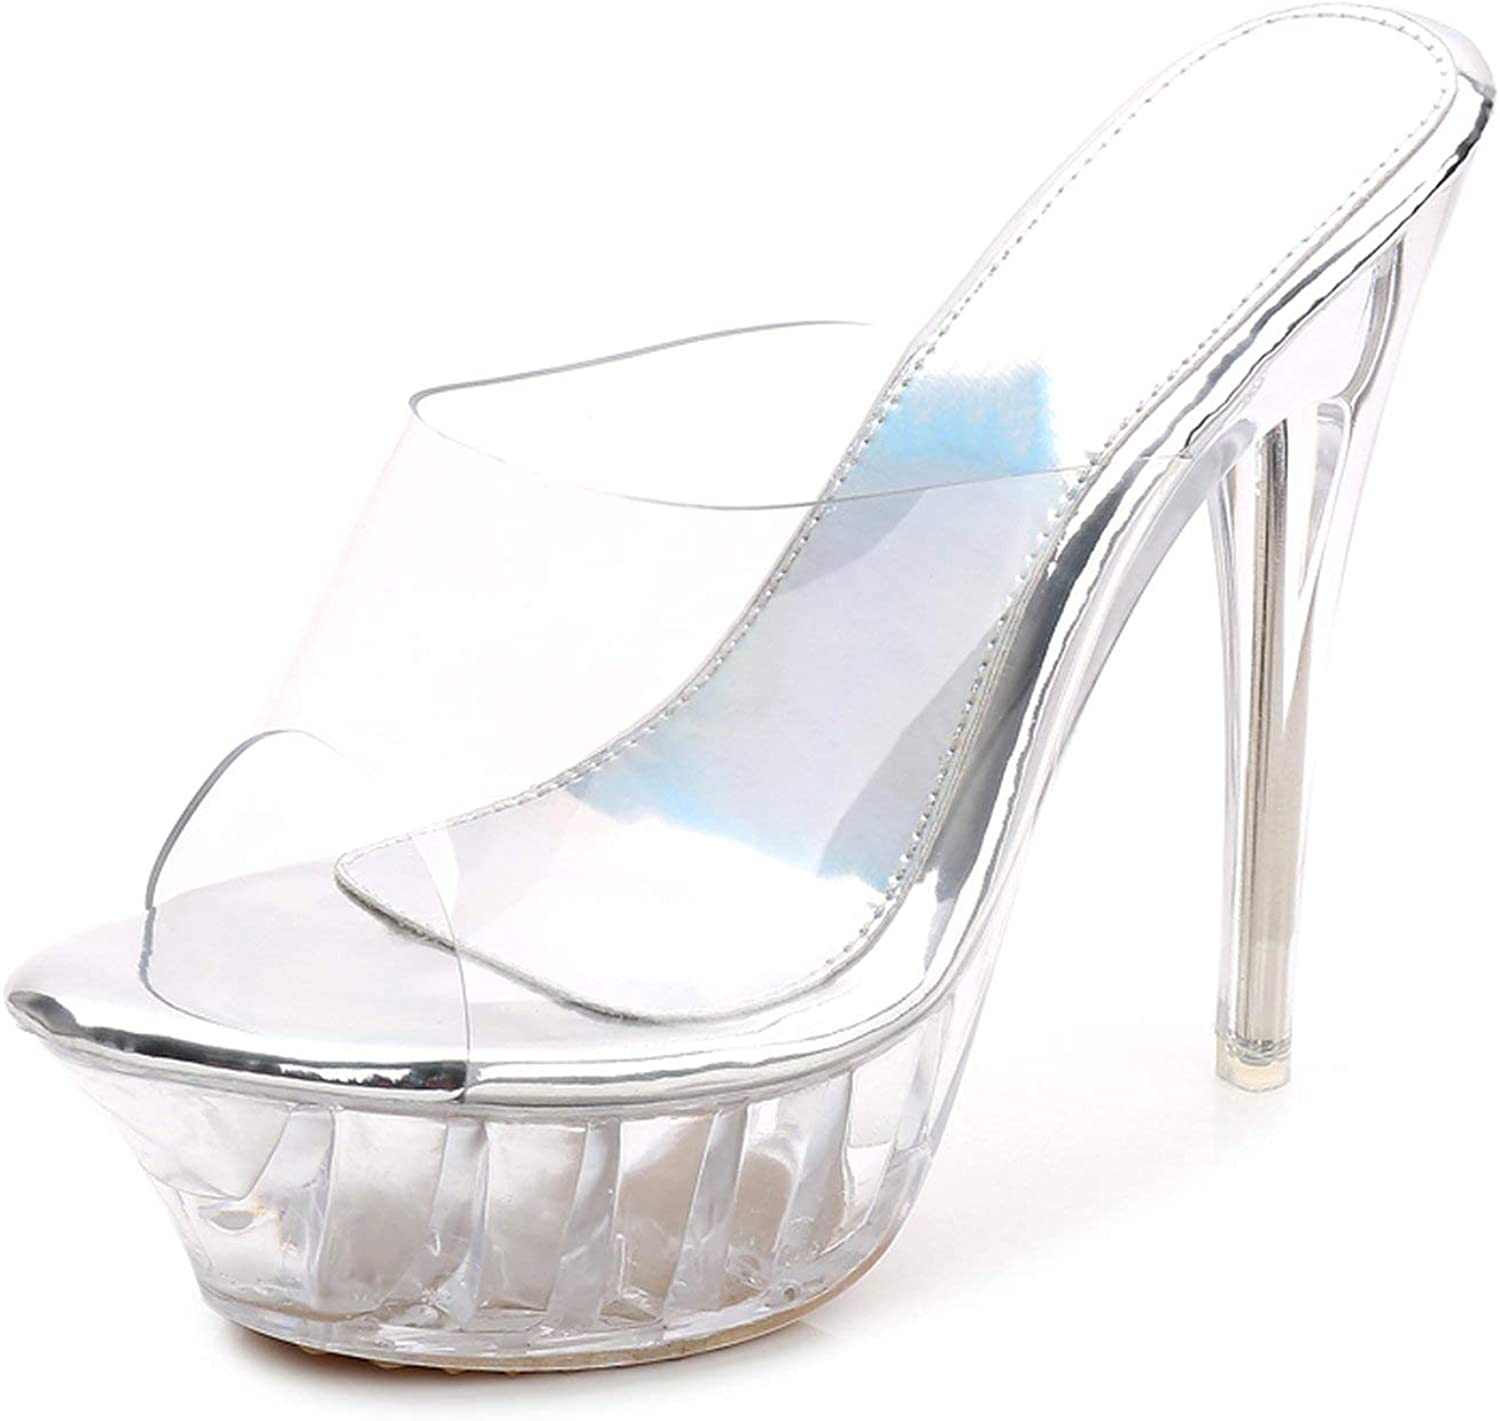 High Heels Womens Sandals Transparent Crystal Heel Model T Stage Sexy Lady Heeled shoes 35-43,1456silver,13